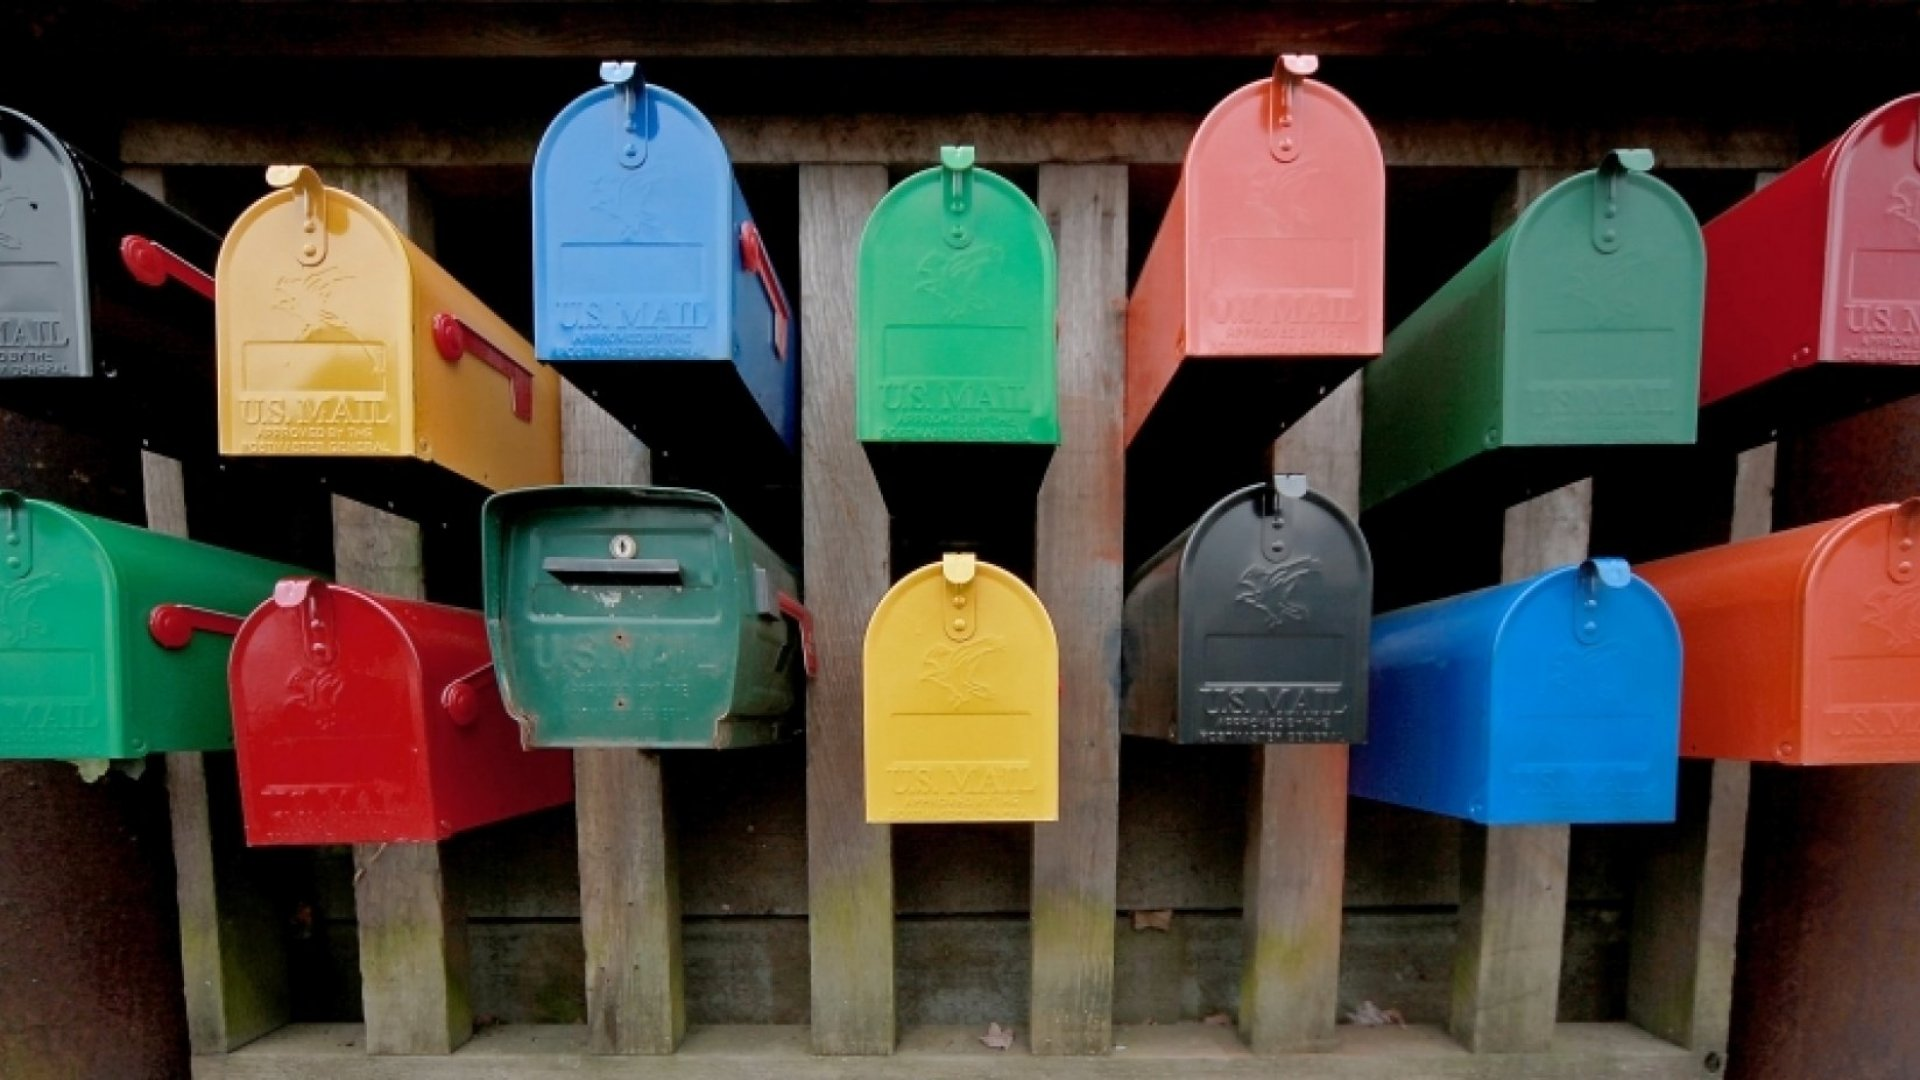 How the Mailbox Can Be the Best Way for Startups to Reach Potential Users